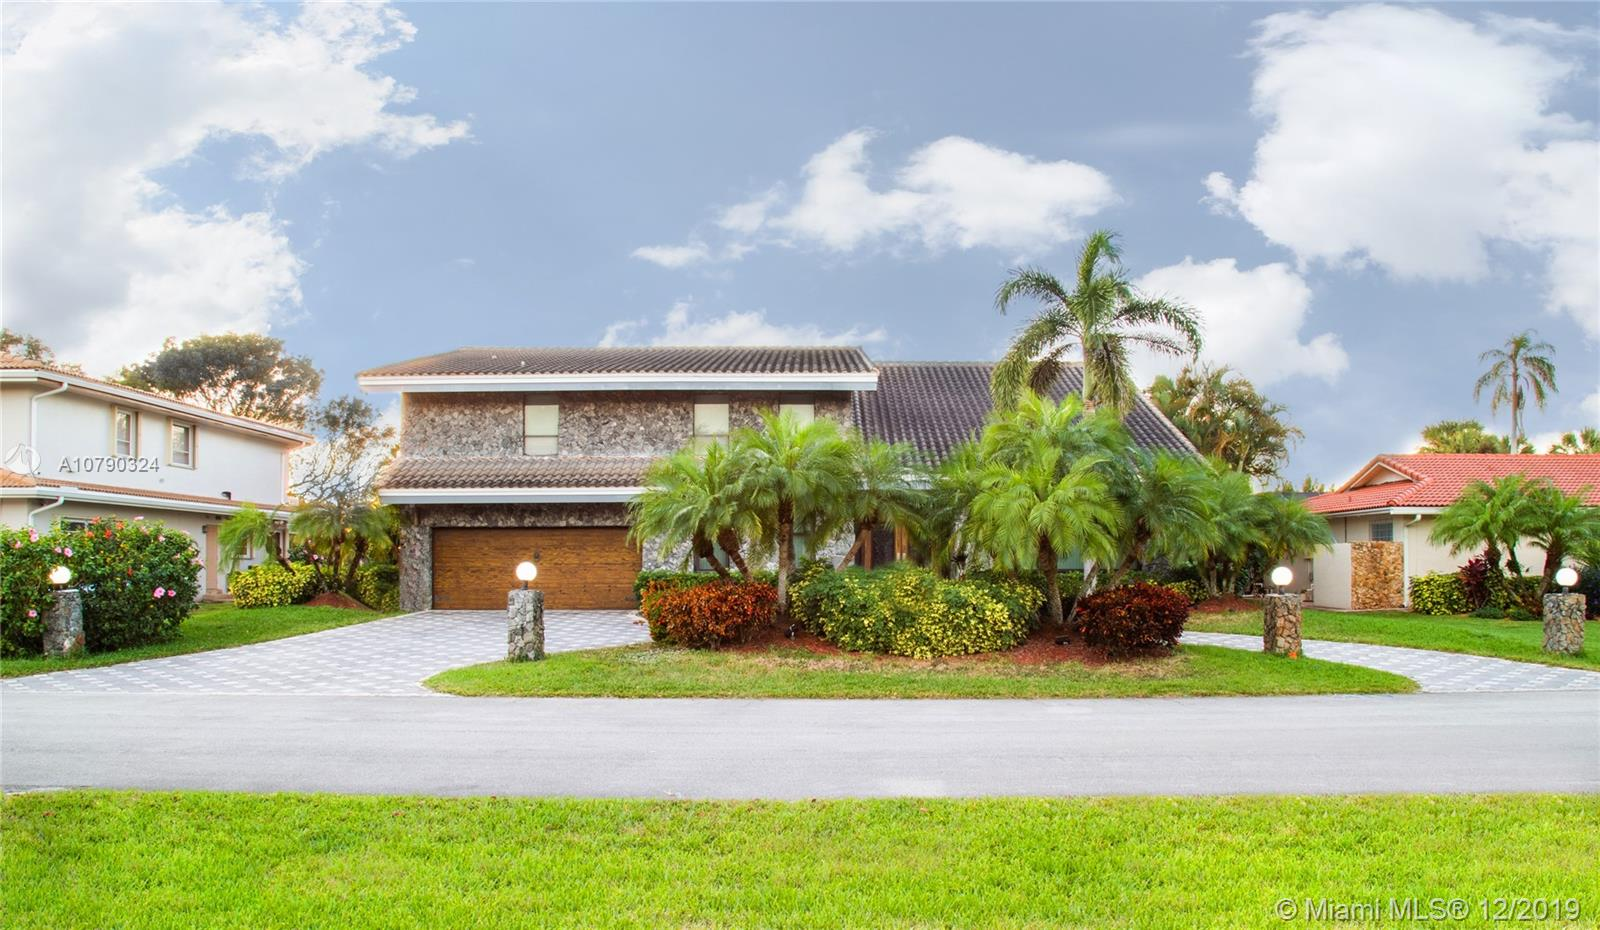 451 W Lake Dasha Dr, Plantation, FL 33324